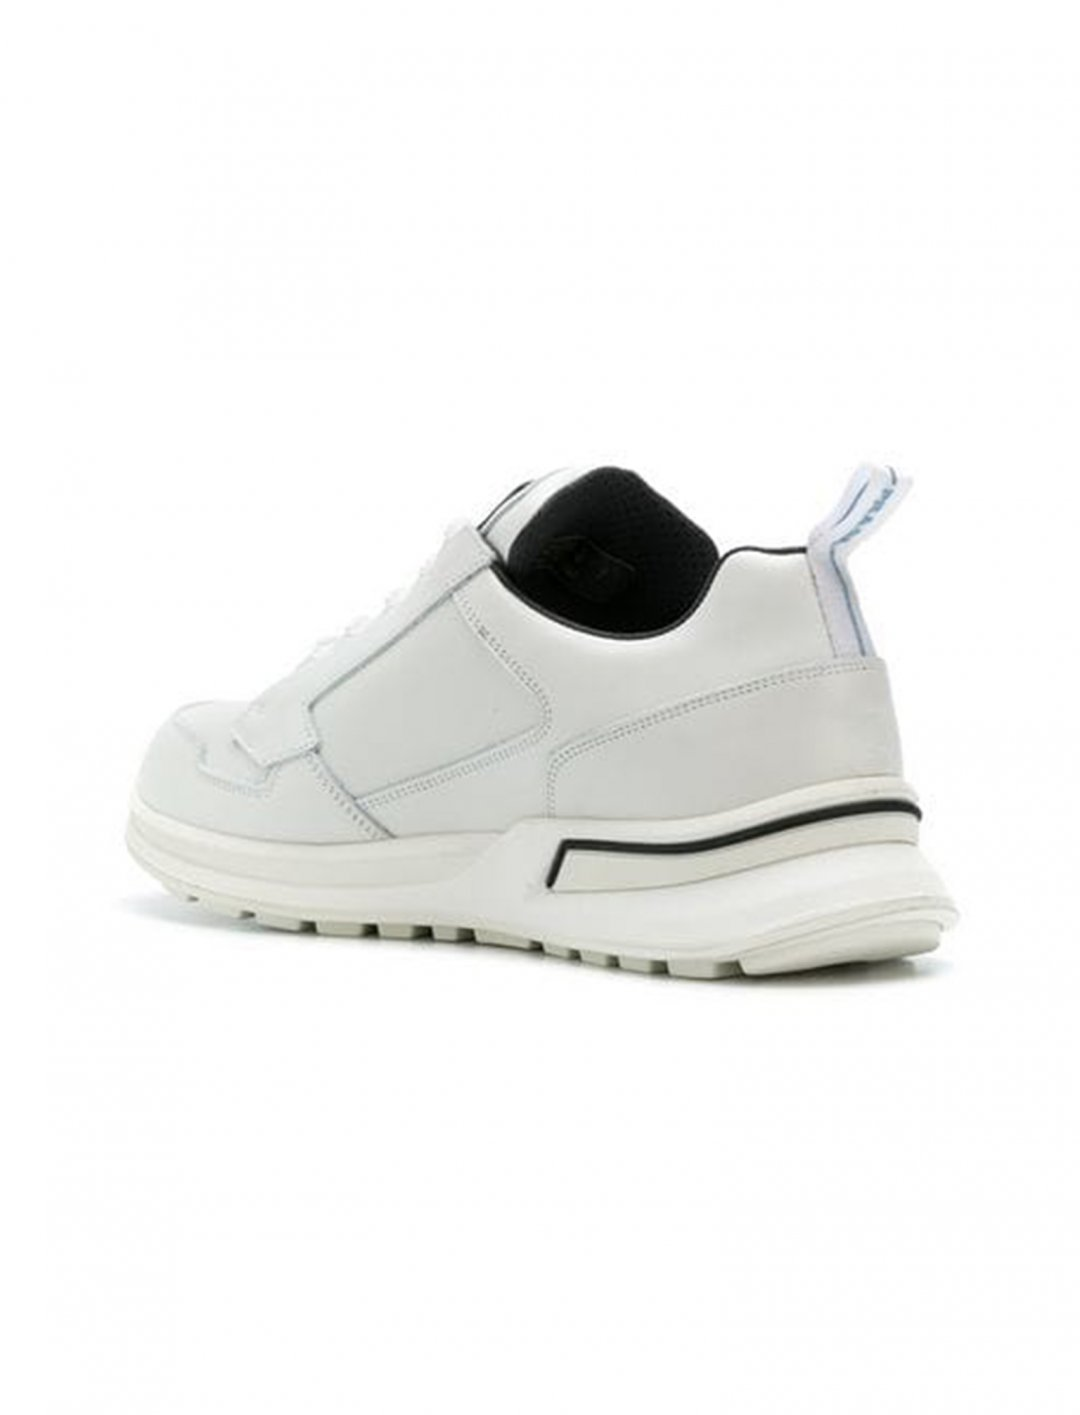 "GASHI's Runner Sneakers {""id"":12,""product_section_id"":1,""name"":""Shoes"",""order"":12} Prada"